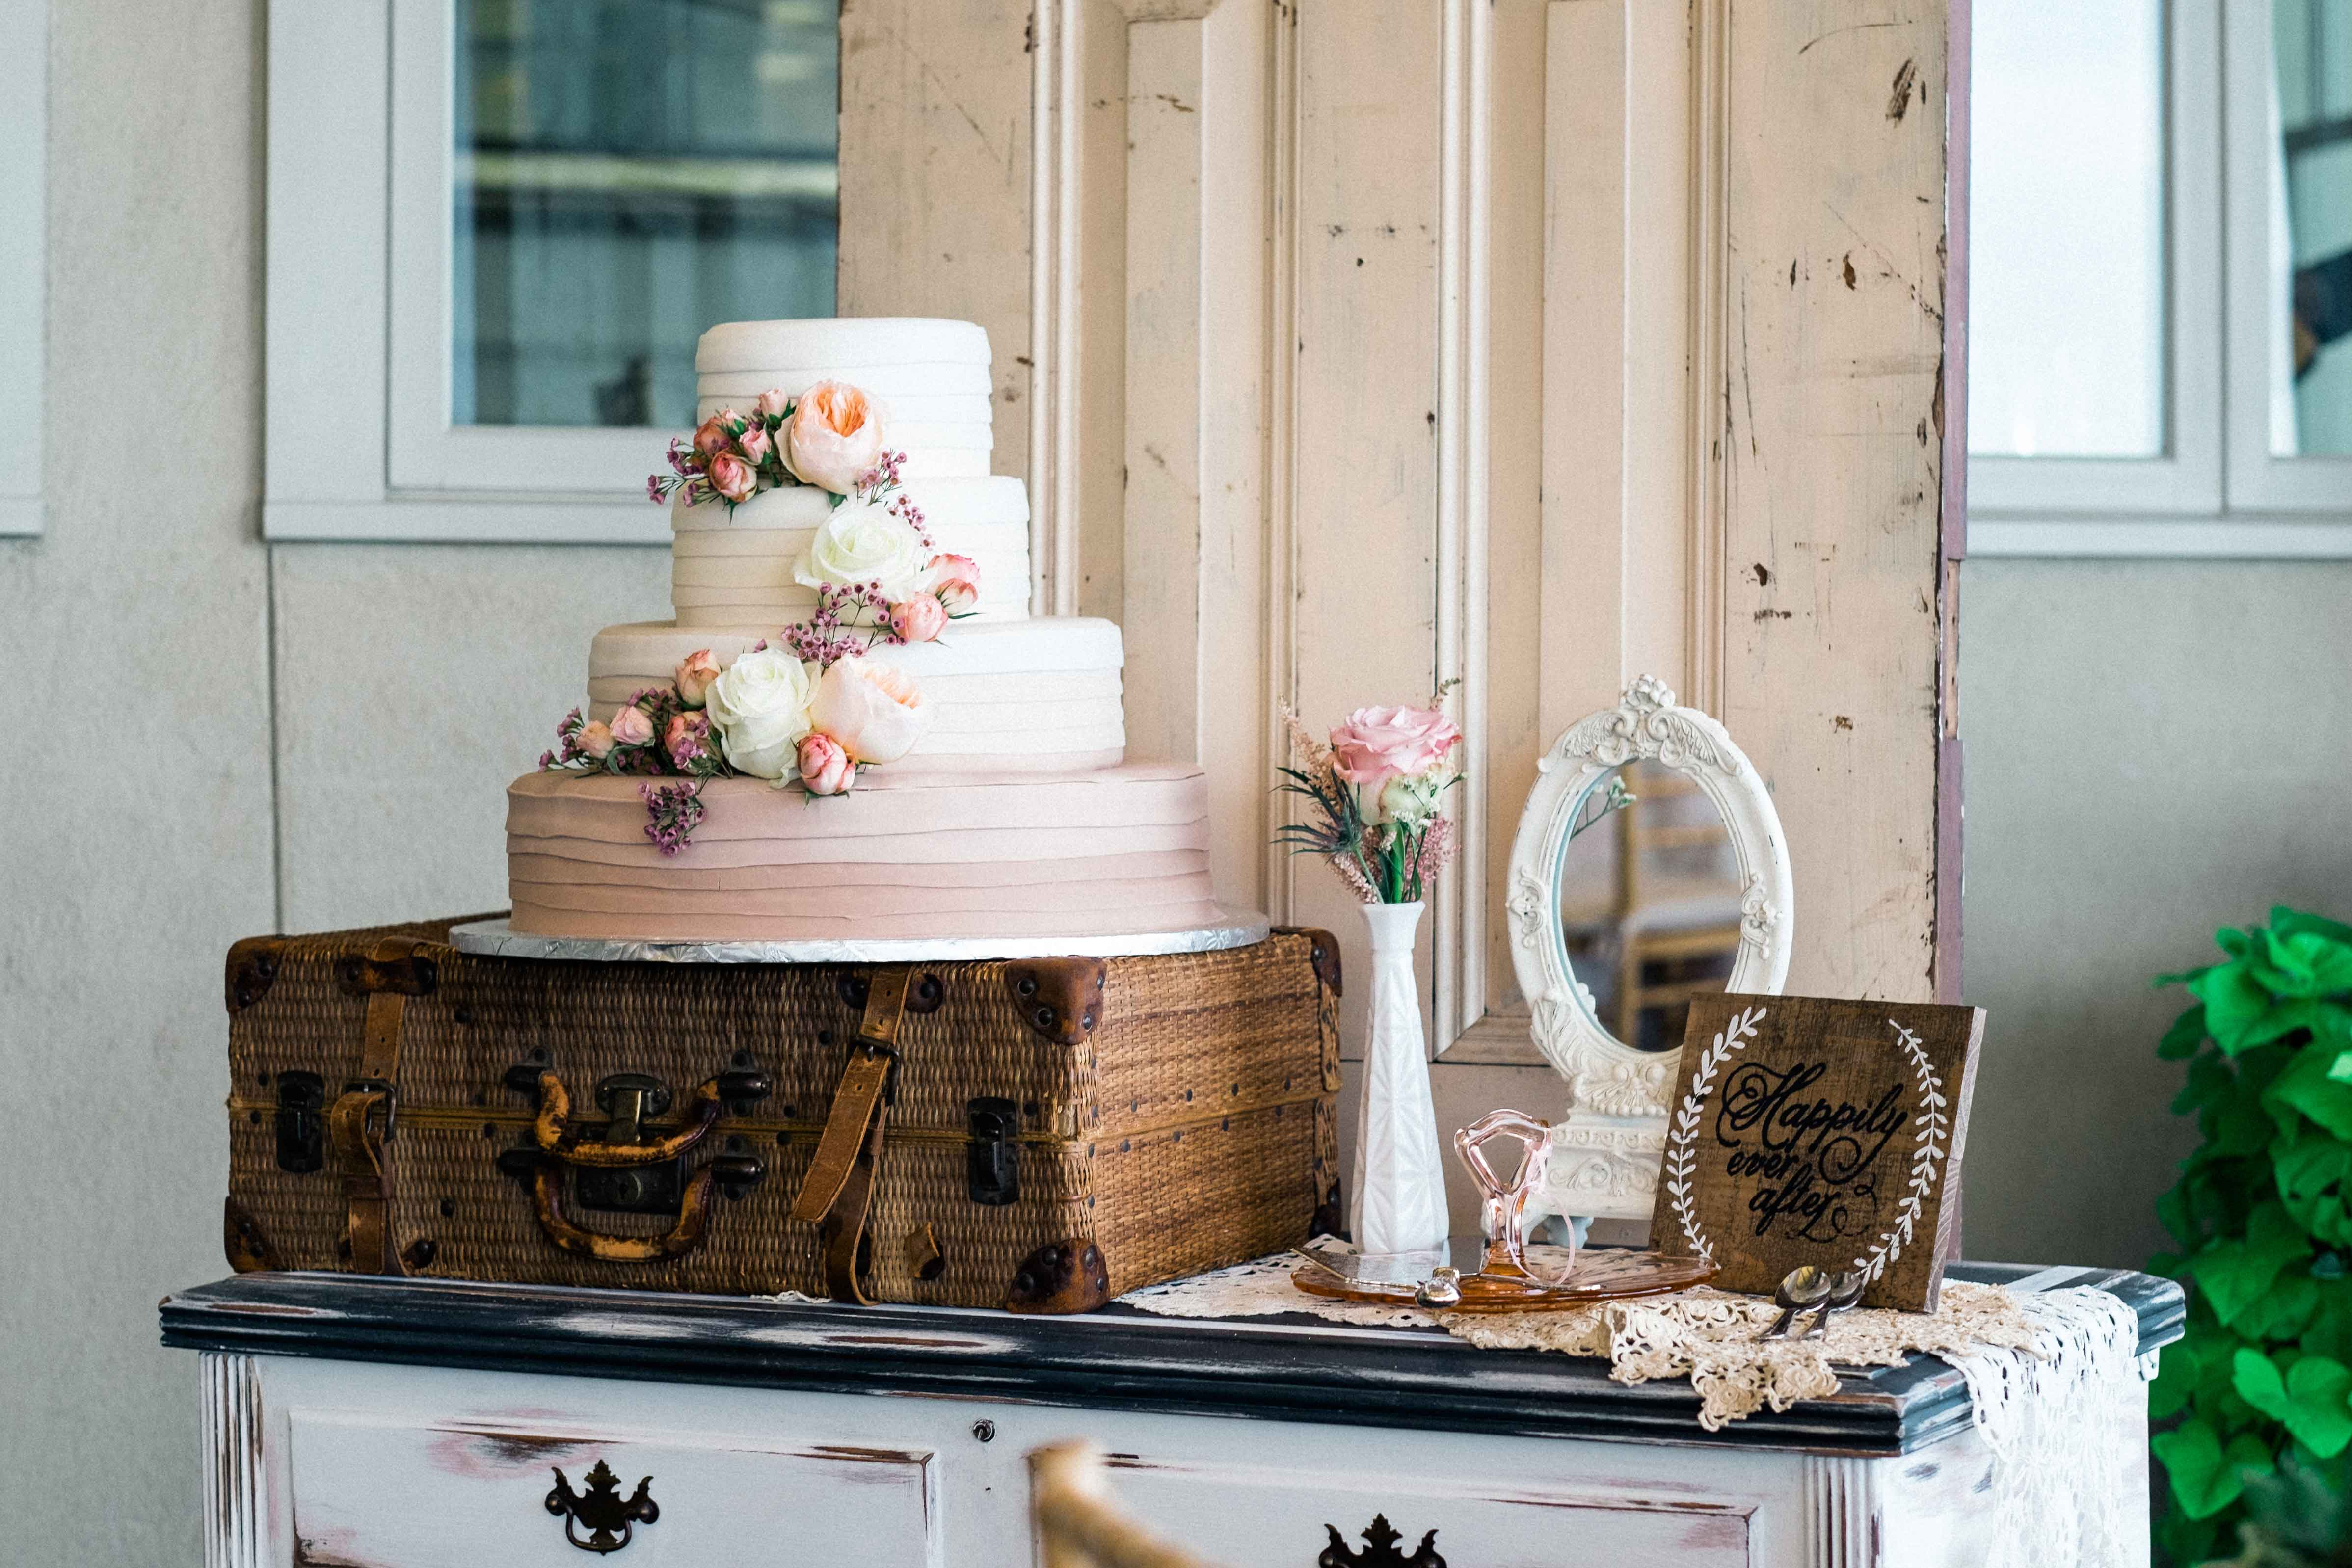 6 Delicious Ombré Wedding Cake Styles for Your Reception - Inside ...